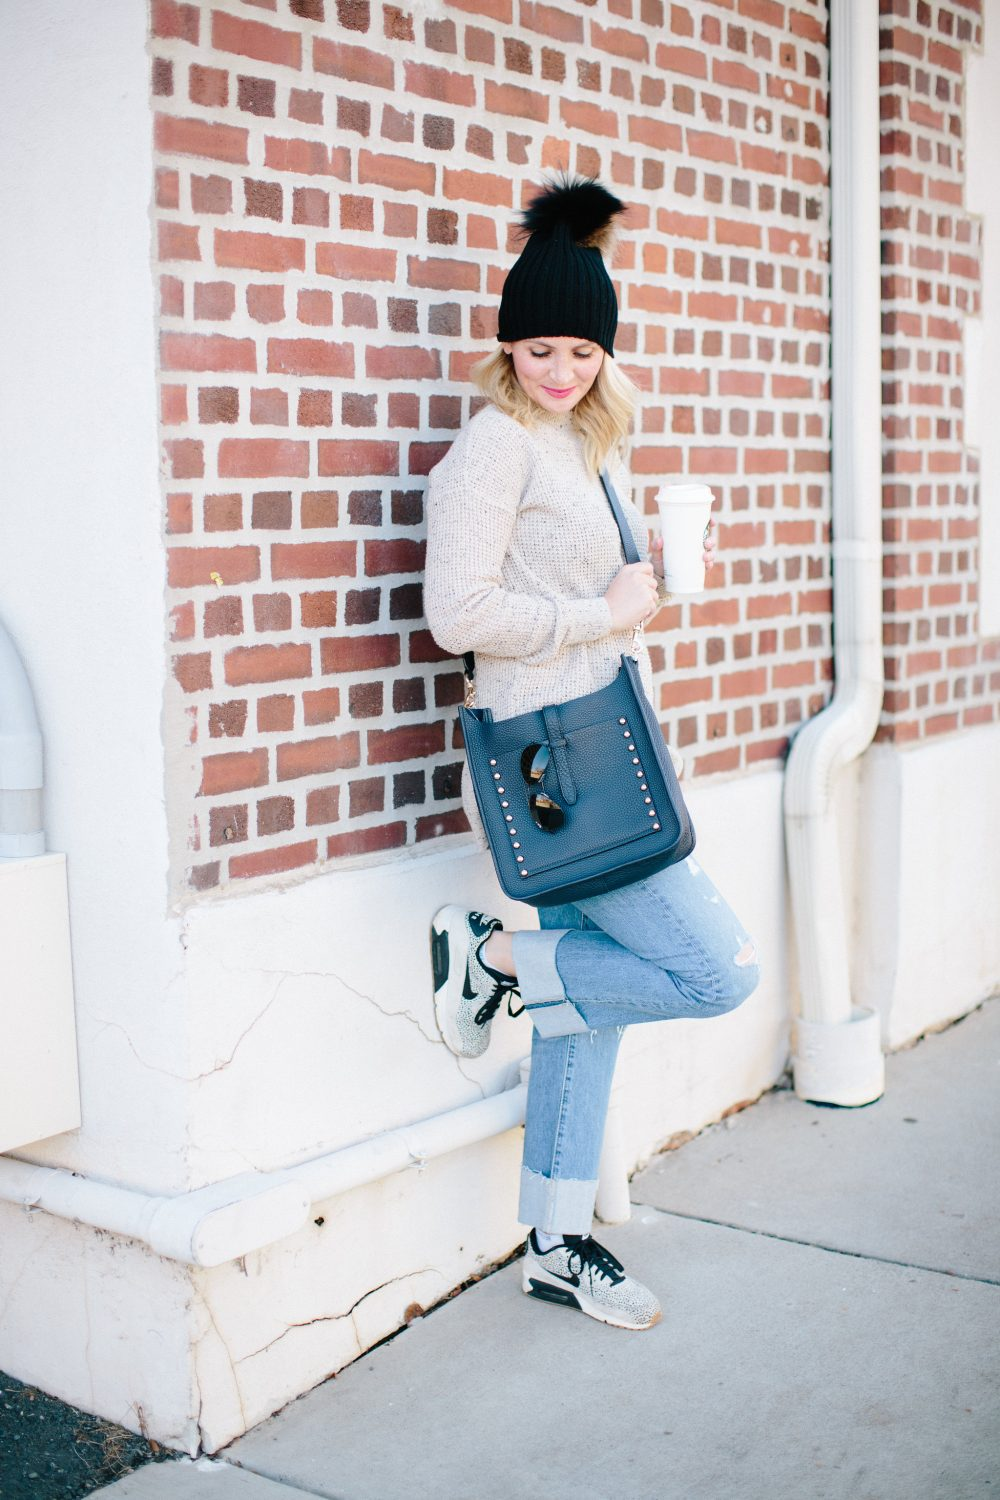 Mom Style - Tunic Sweaters and Distressed Denim